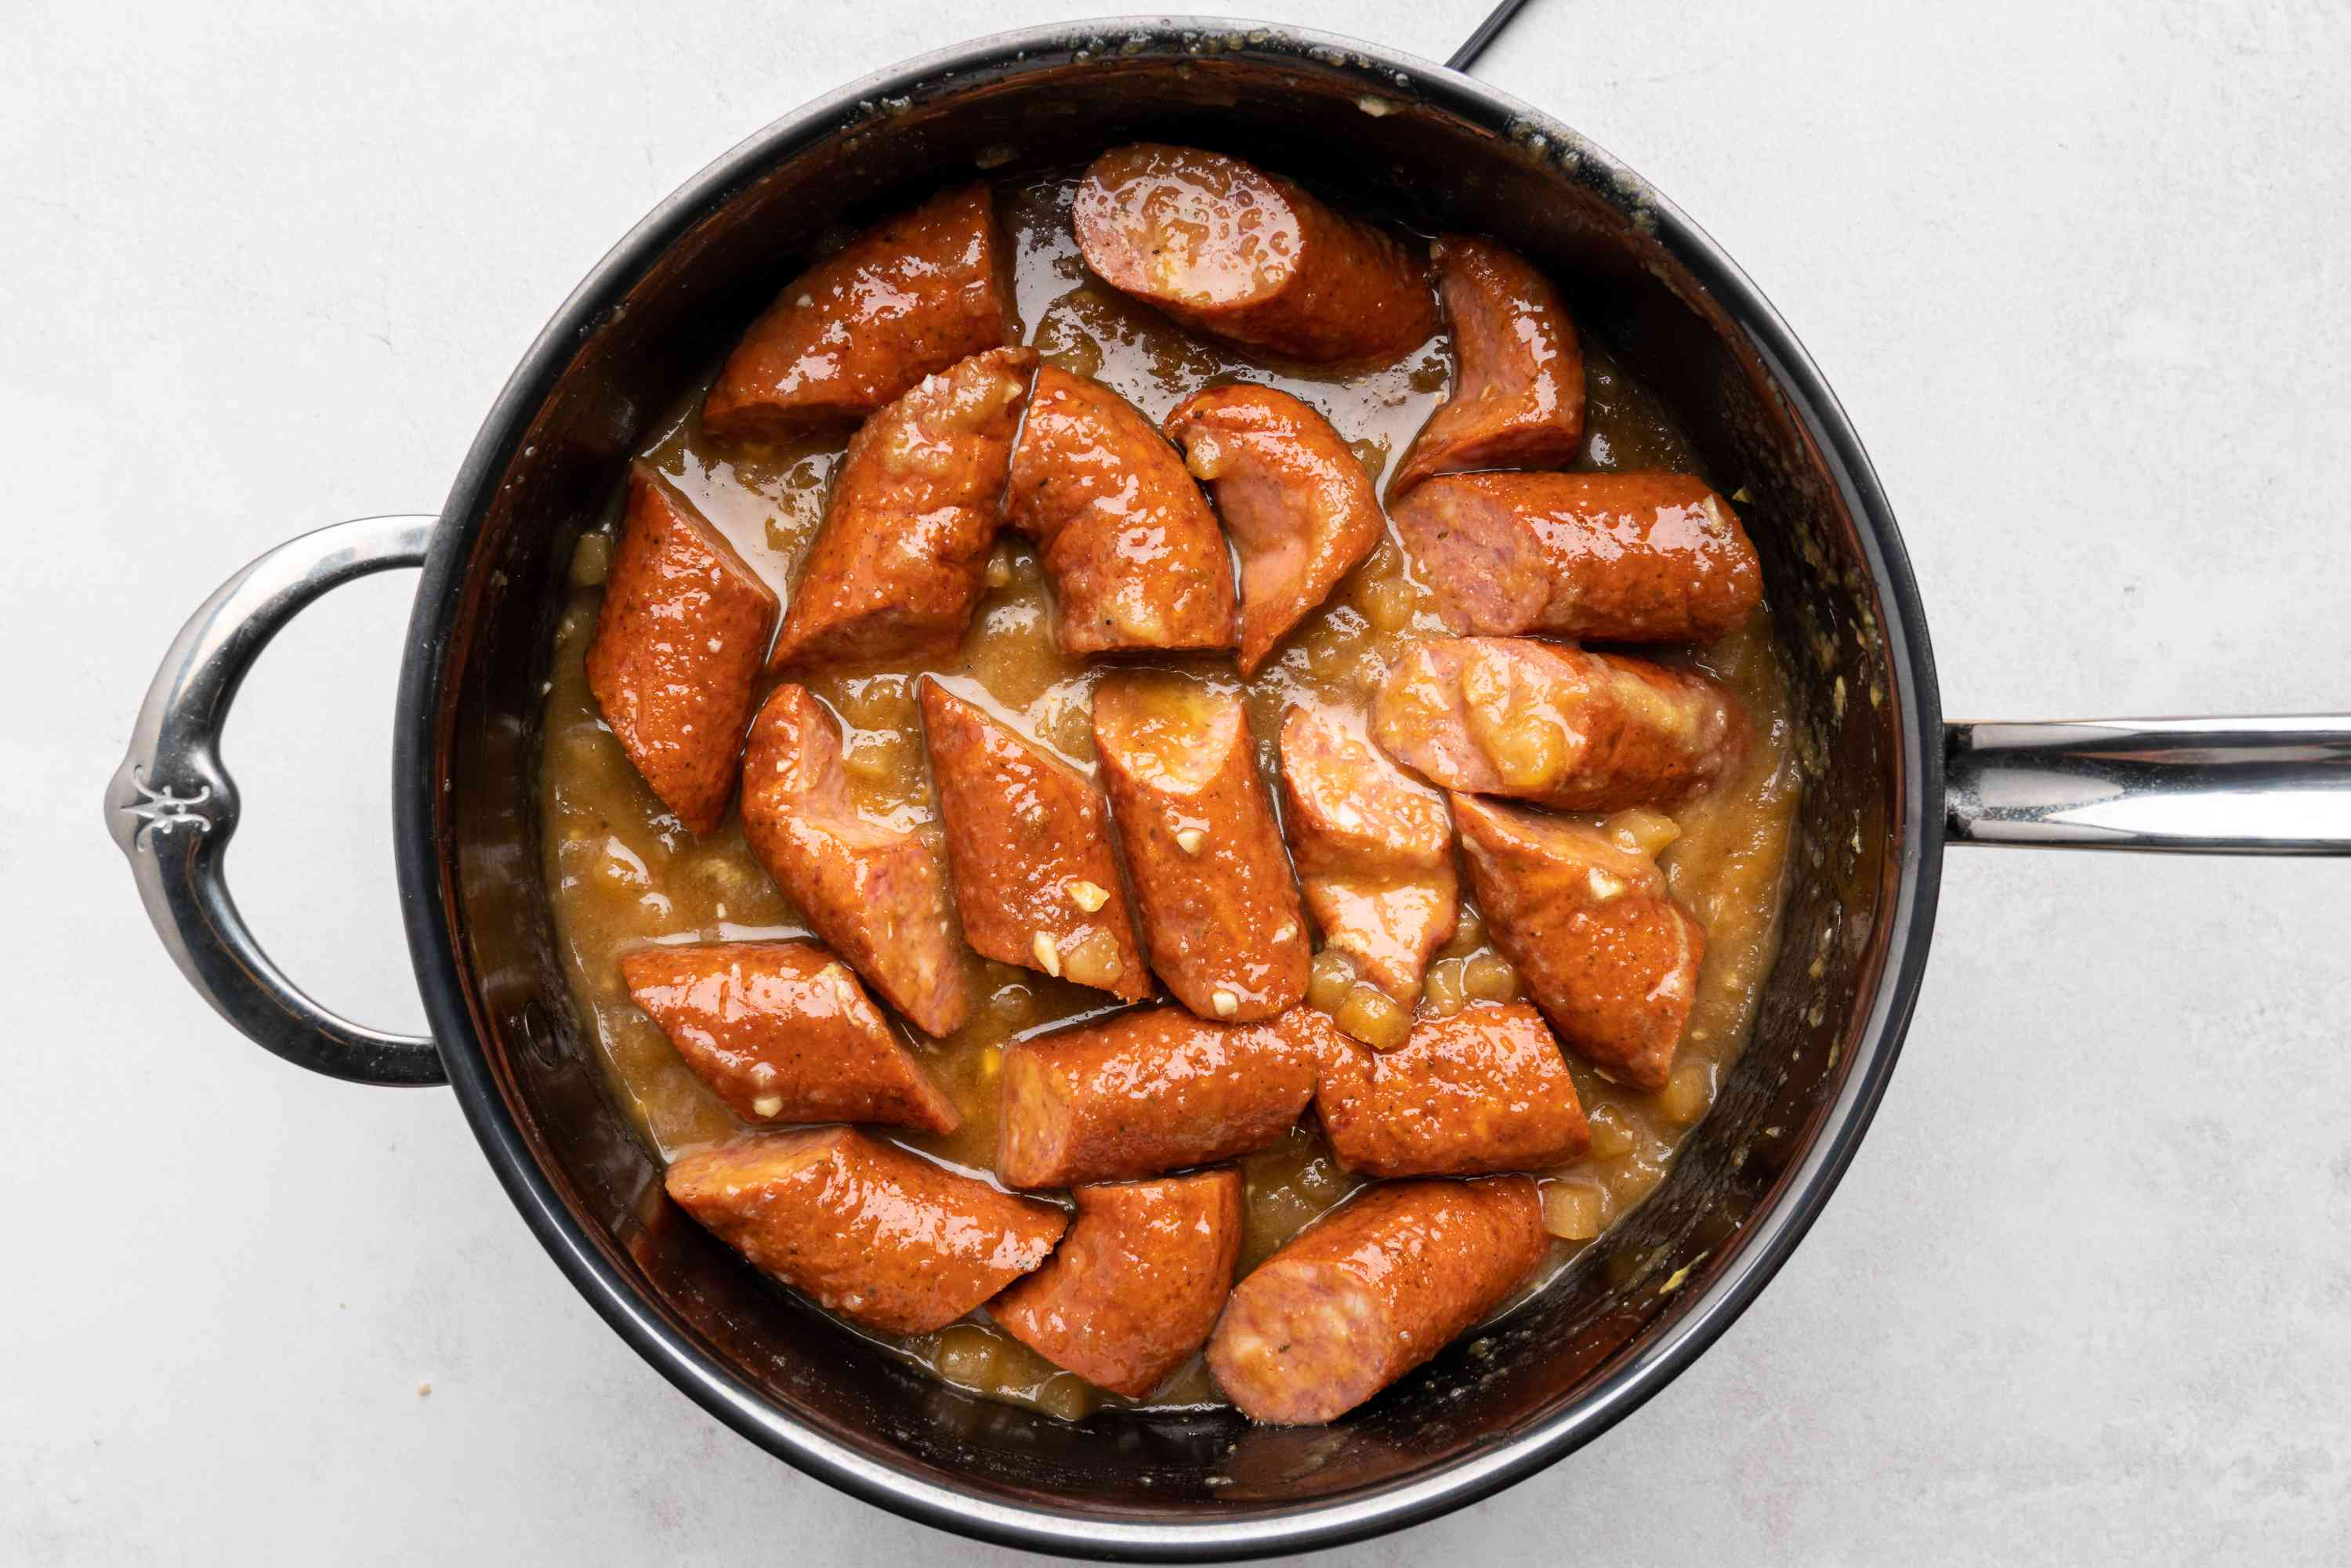 sausage with the brown sugar, applesauce, mustard, and garlic in a large saucepan